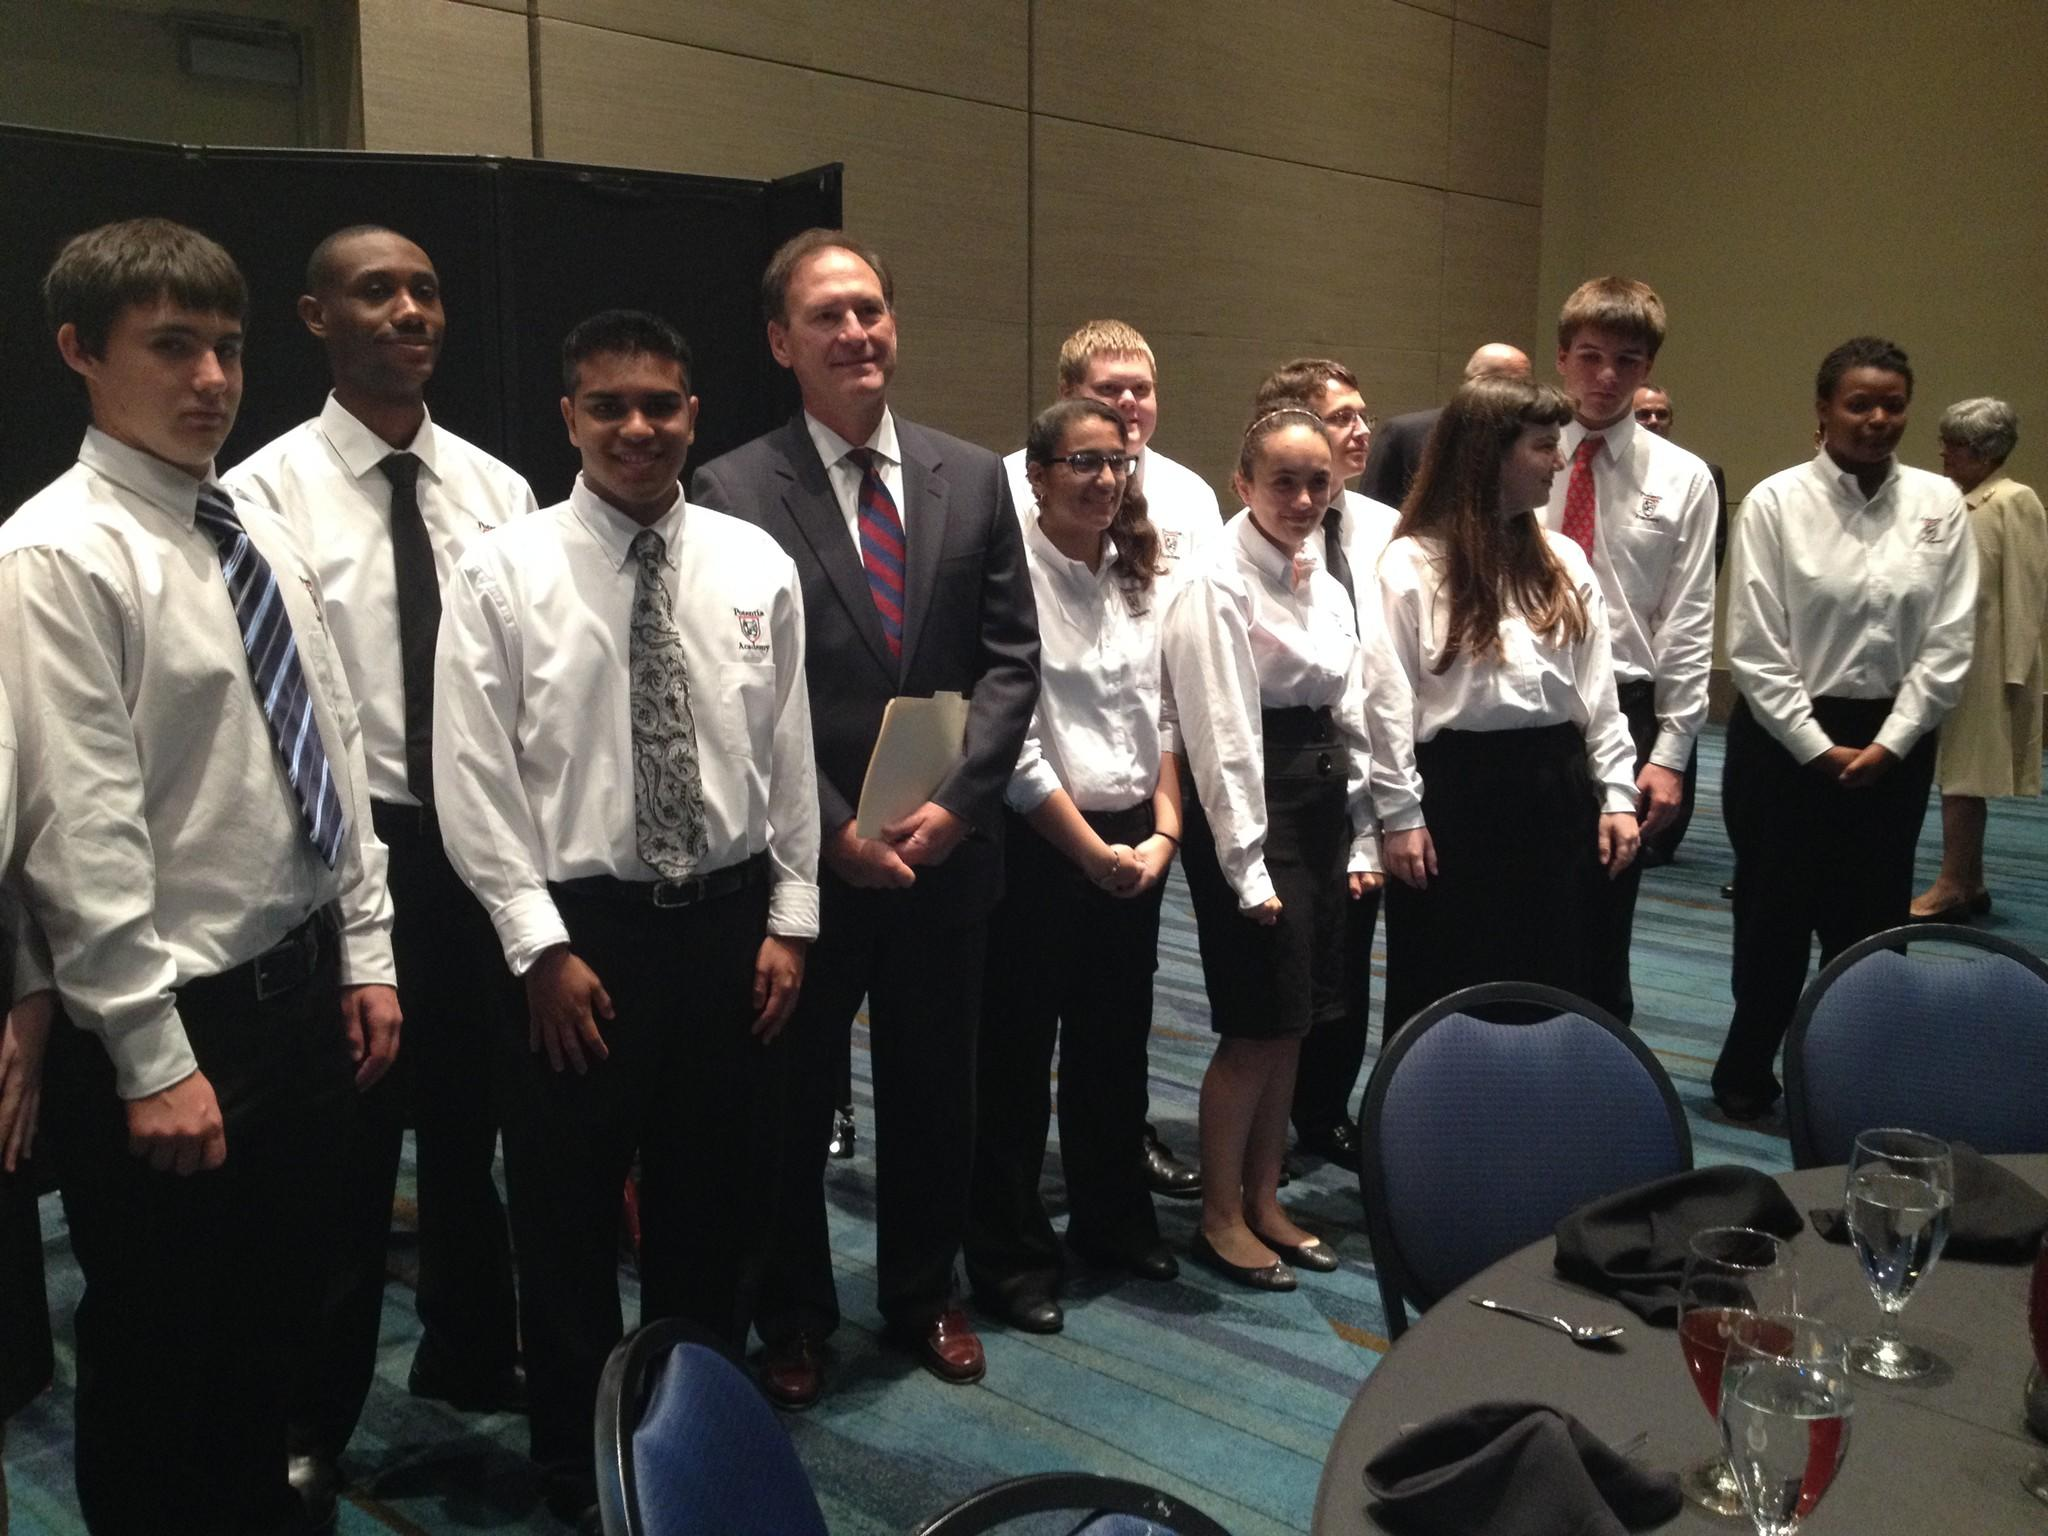 U.S. Supreme Court Associate Justice Samuel Alito meets with Potentia Academy students in West Palm Beach on Feb. 3, 2014.